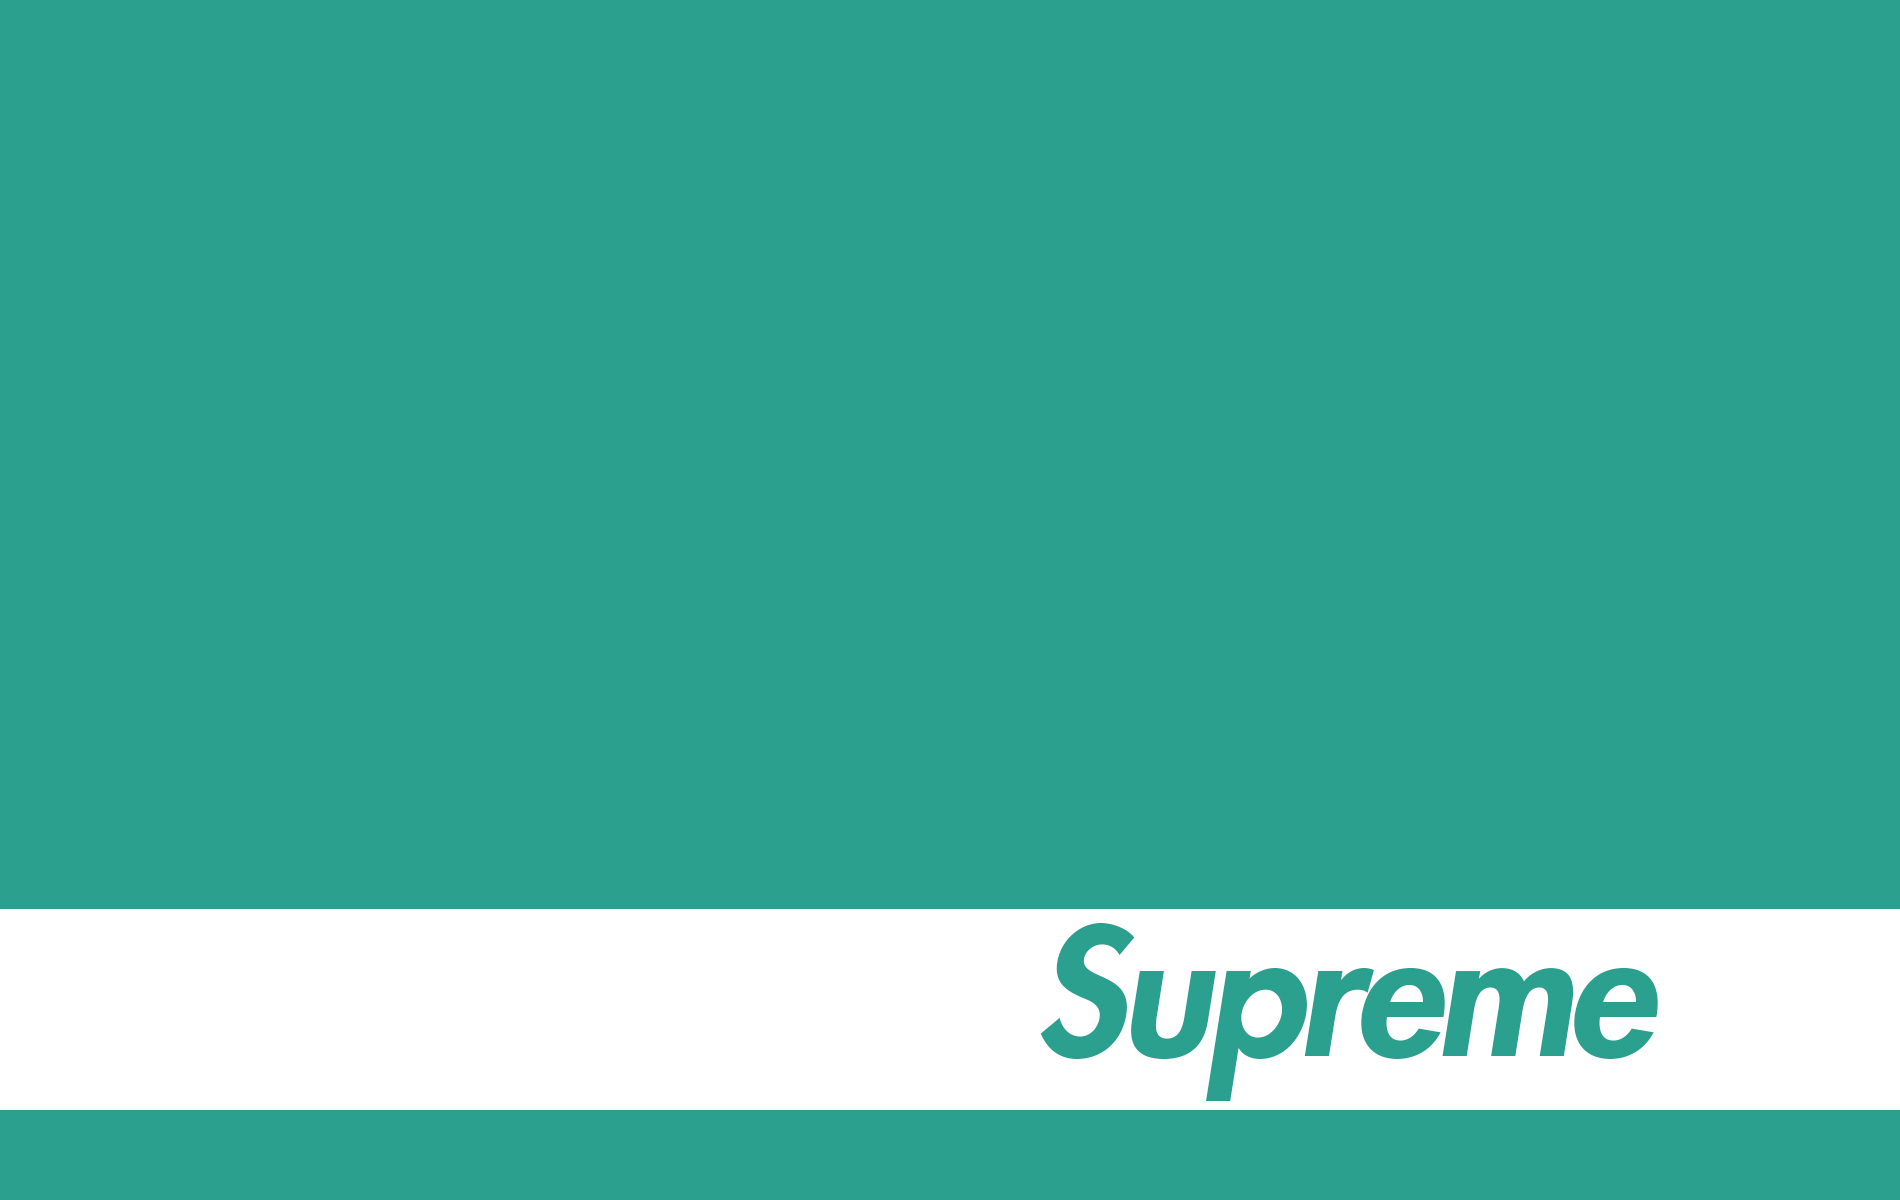 Supreme HD Wallpapers 2019